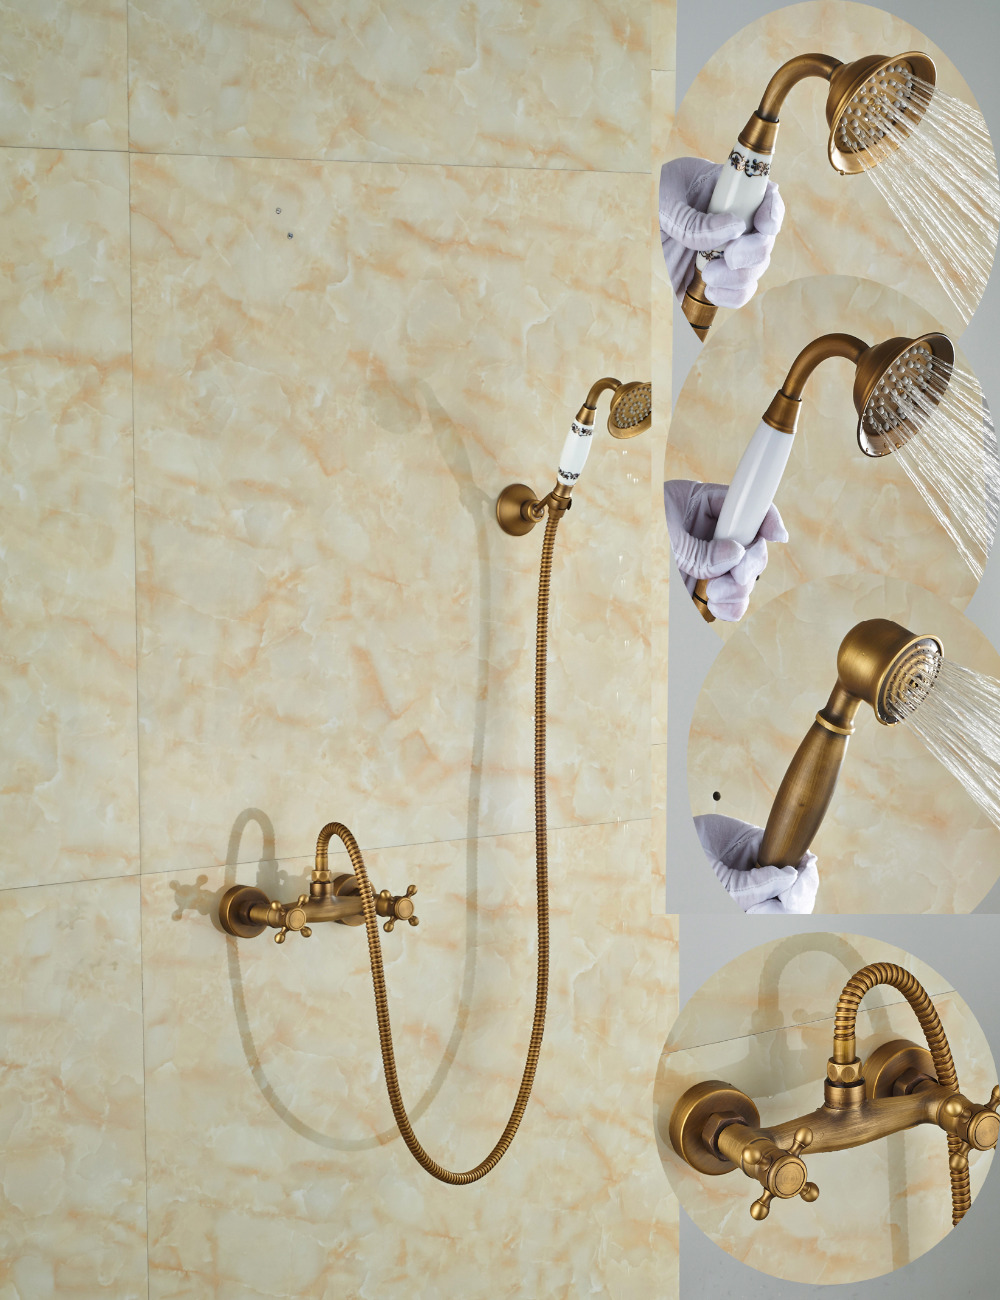 Wholesale And Retail Promotion Classic Antique Brass Bathroom Tub Faucet Dual Cross Handles W/ Handhelf Shower Sprayer antique brass swivel spout dual cross handles kitchen